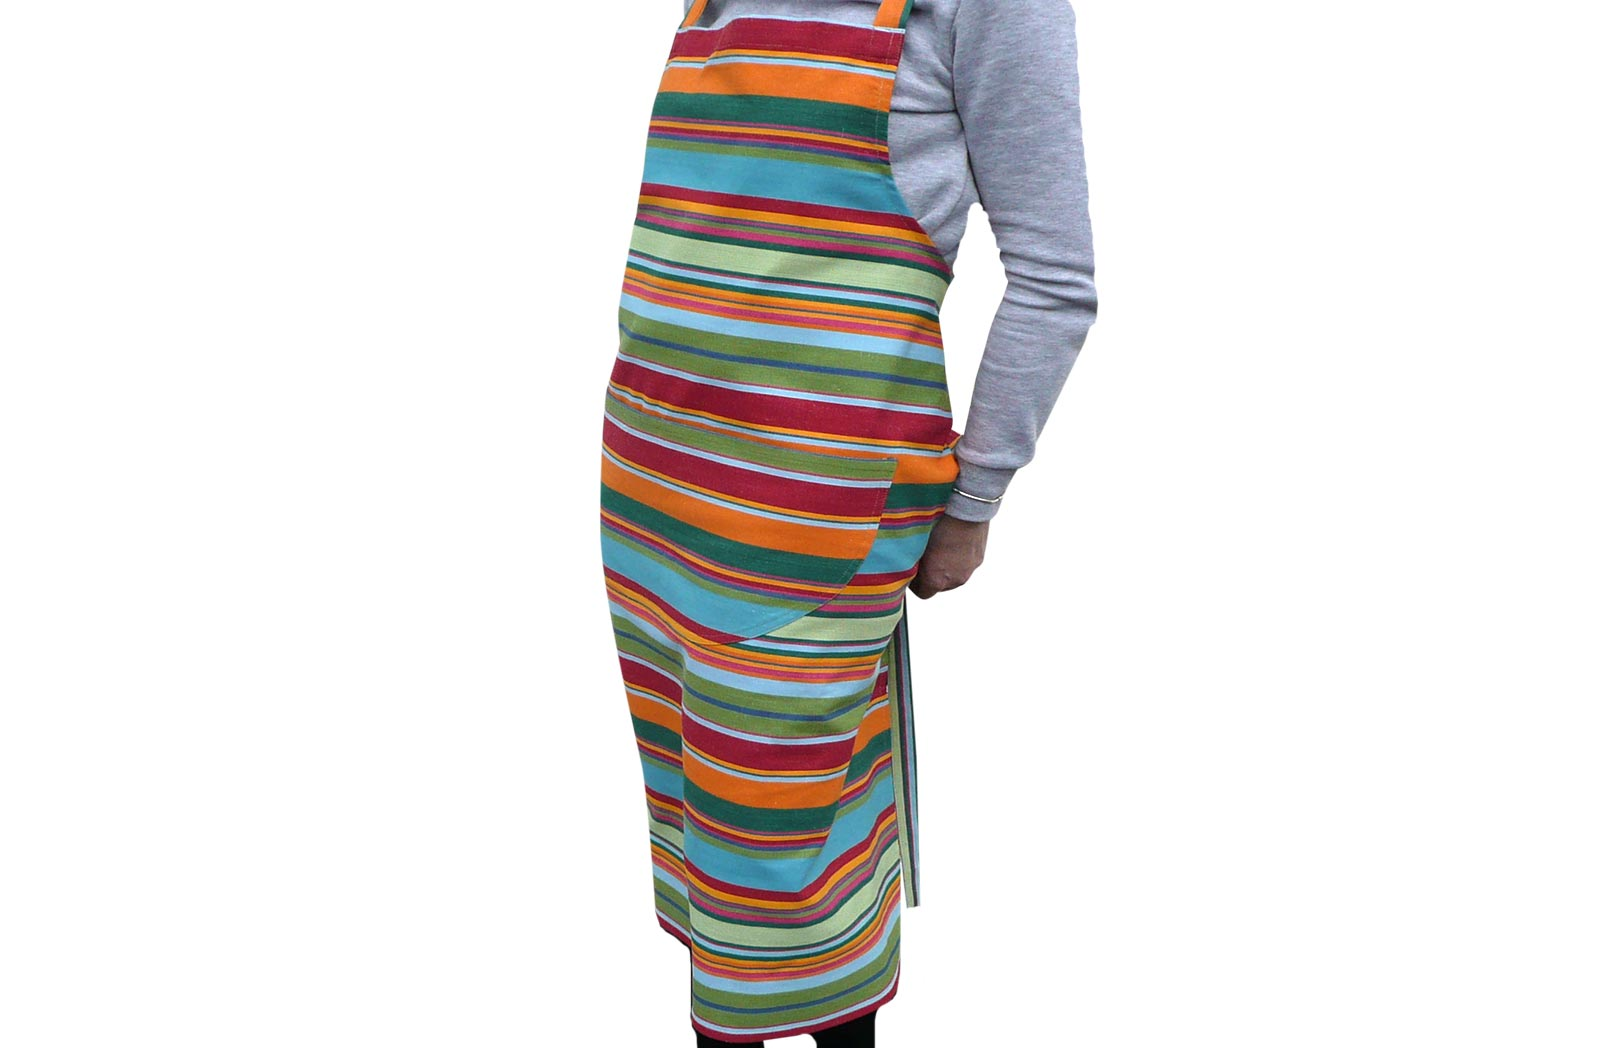 Green and Red Striped Apron